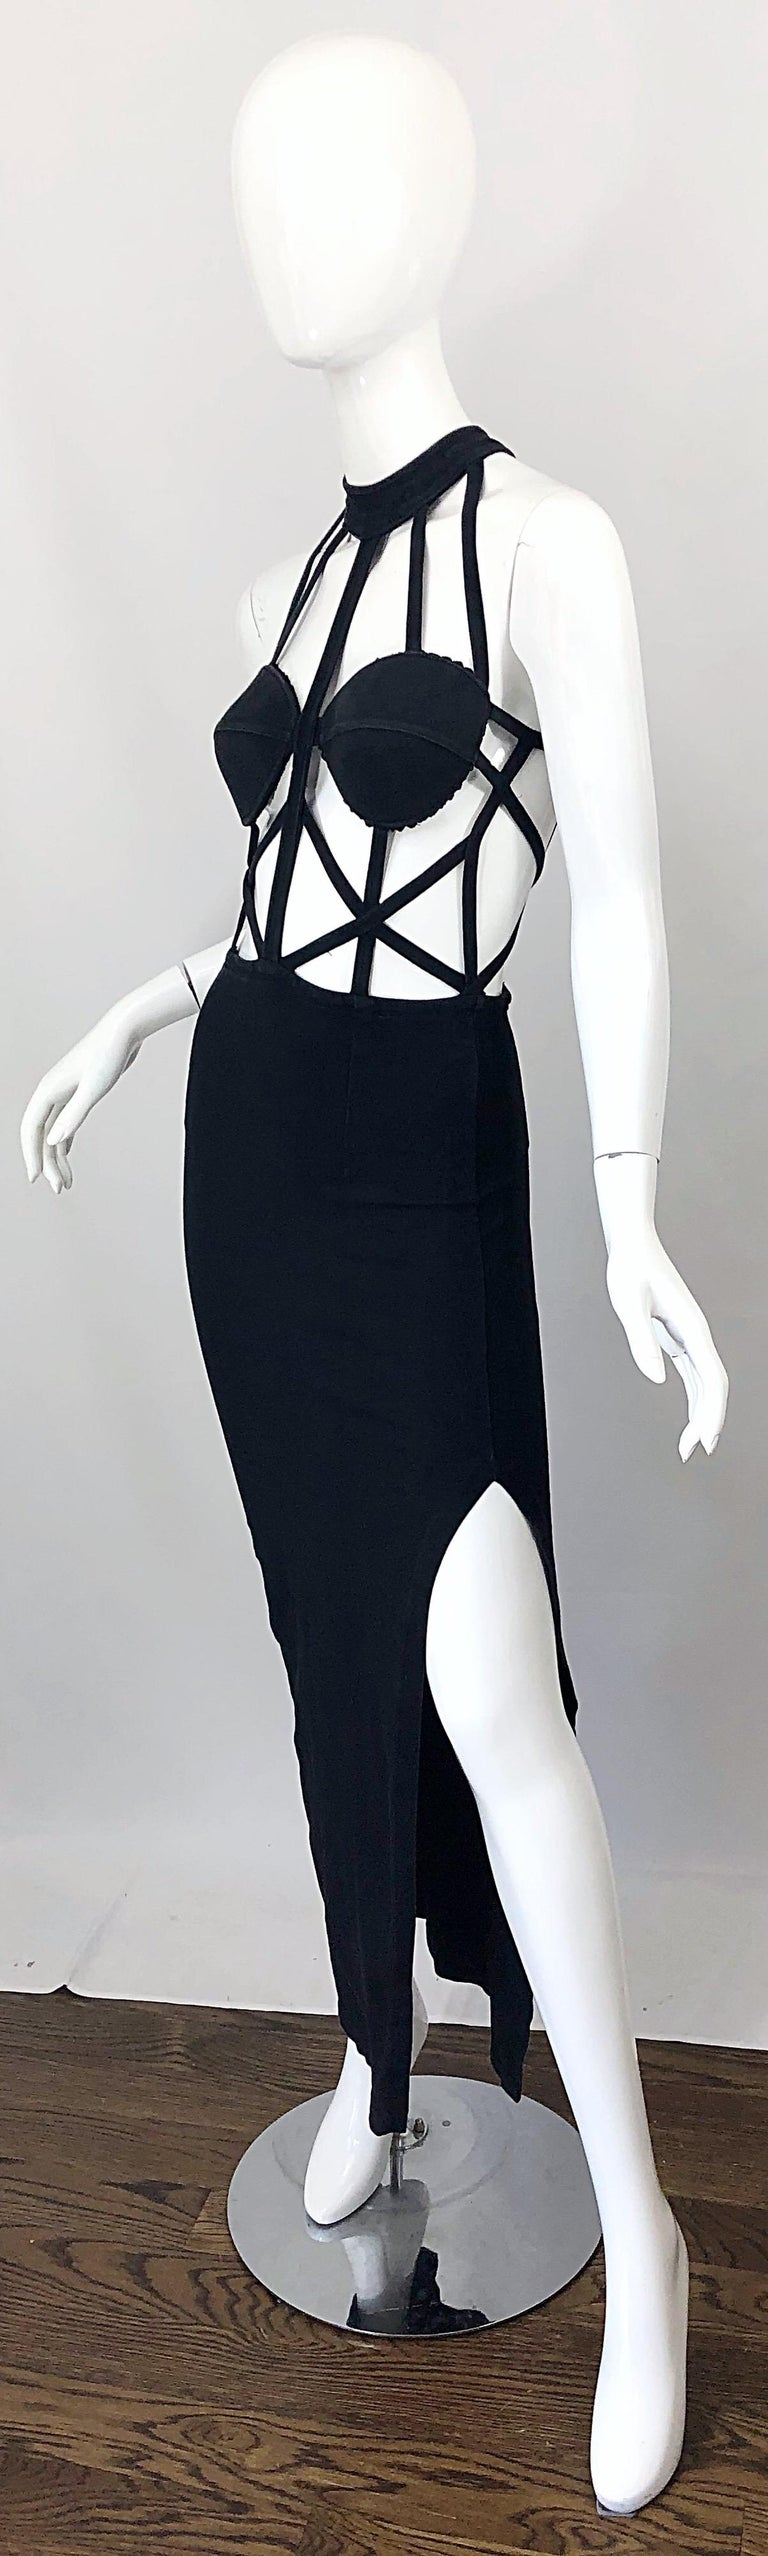 Women's 1990s Black Caged Bodycon Sexy Cotton Vintage Early 90s Cut - Out Gown Dress For Sale